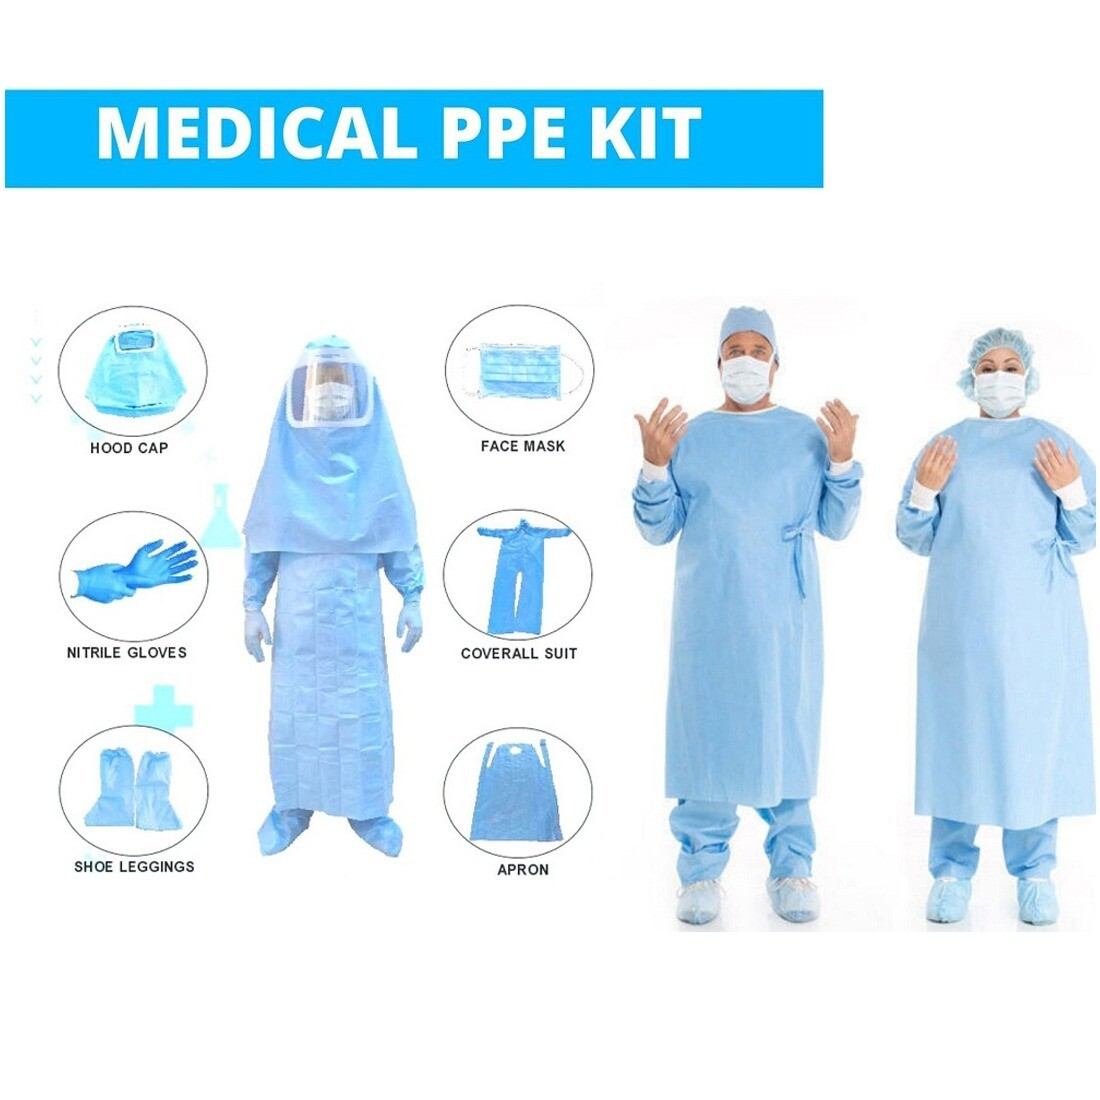 Sattva Washable Bio-Hazard PPE Safety COVERALL ONLY, SITRA APPROVED 95 GSM TPU Coated Material, White, OSFM. Hot Air Seam Seal & Elasticated Waist. Reusable upto 20 times. No Kit Inclusions.